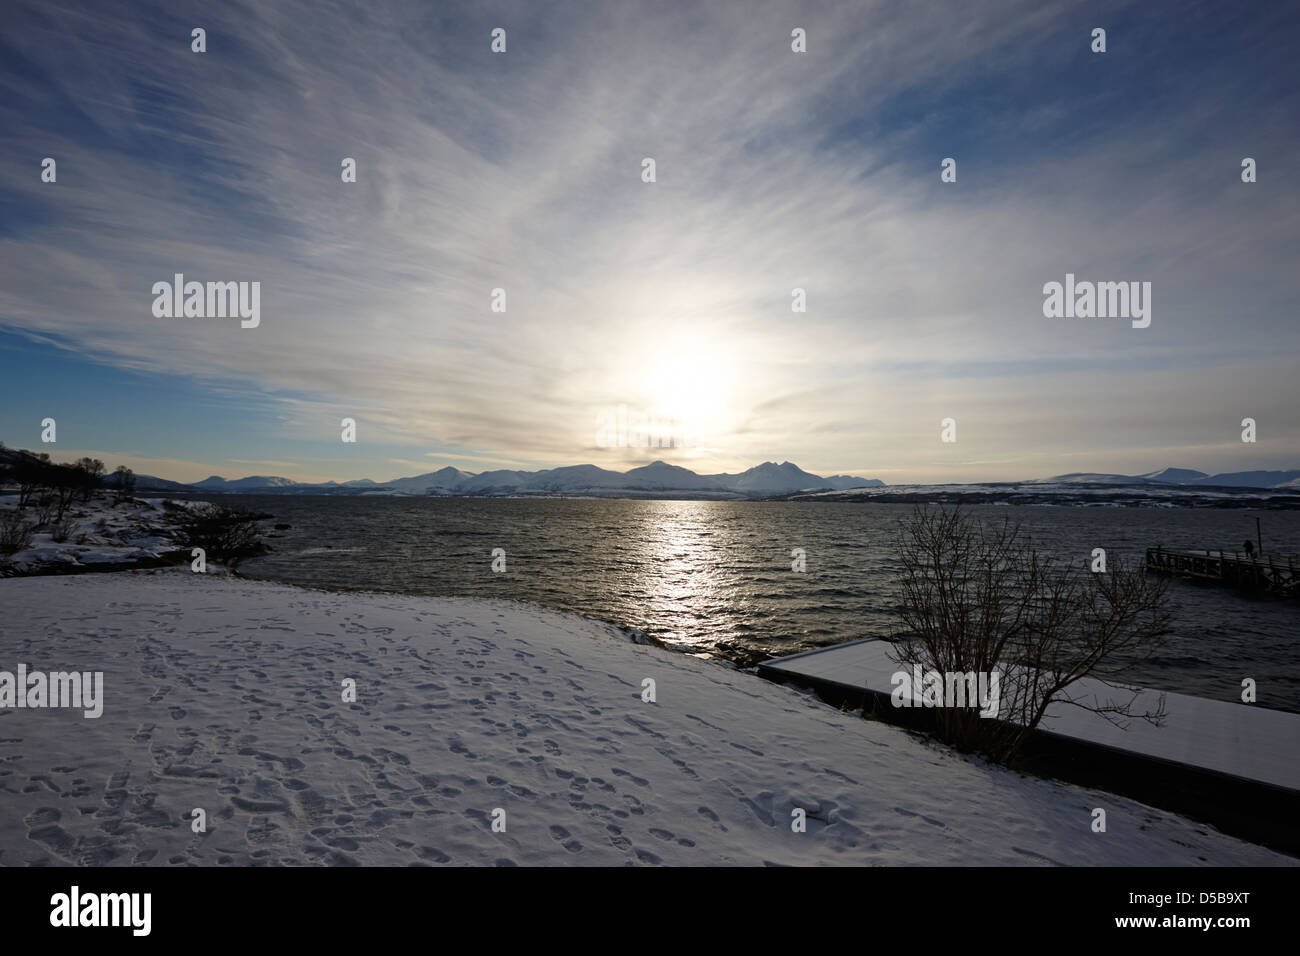 Winter Halo Stock Photos & Winter Halo Stock Images - Alamy